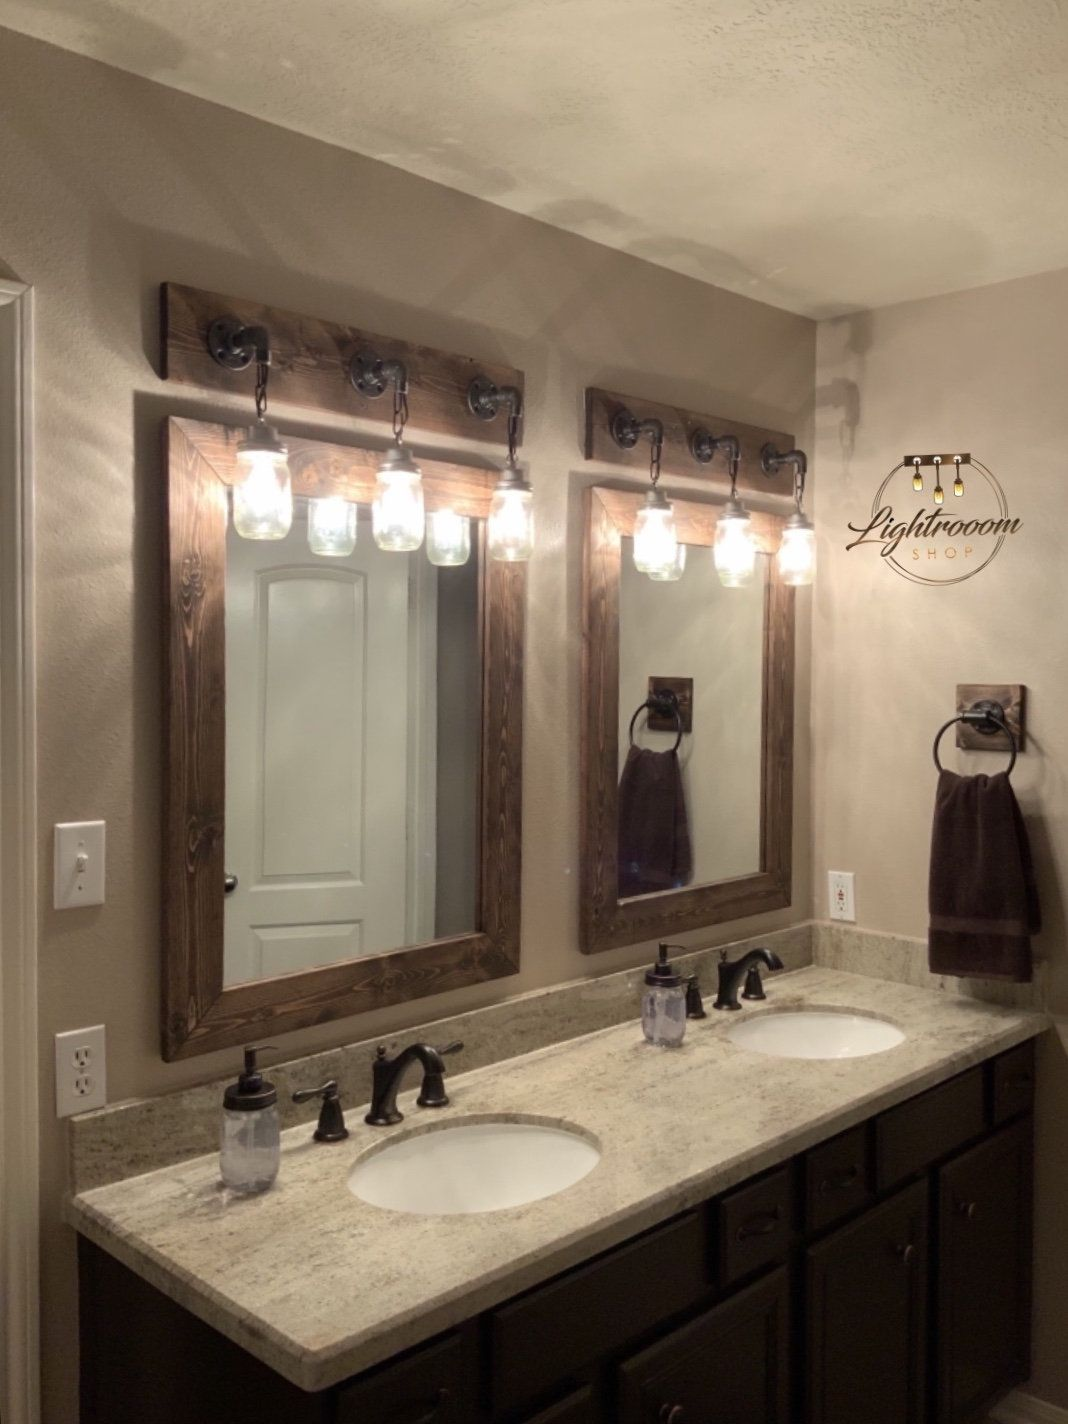 Dark Walnut Set Of Mirrors Double Sink Mirrors 2 Mirrors Bathroom Mirror Double Vanity Mirrors Wood Framed Mirrors Wall Floor Mirrors Wood Mirror Bathroom Double Vanity Bathroom Large Bathroom Mirrors